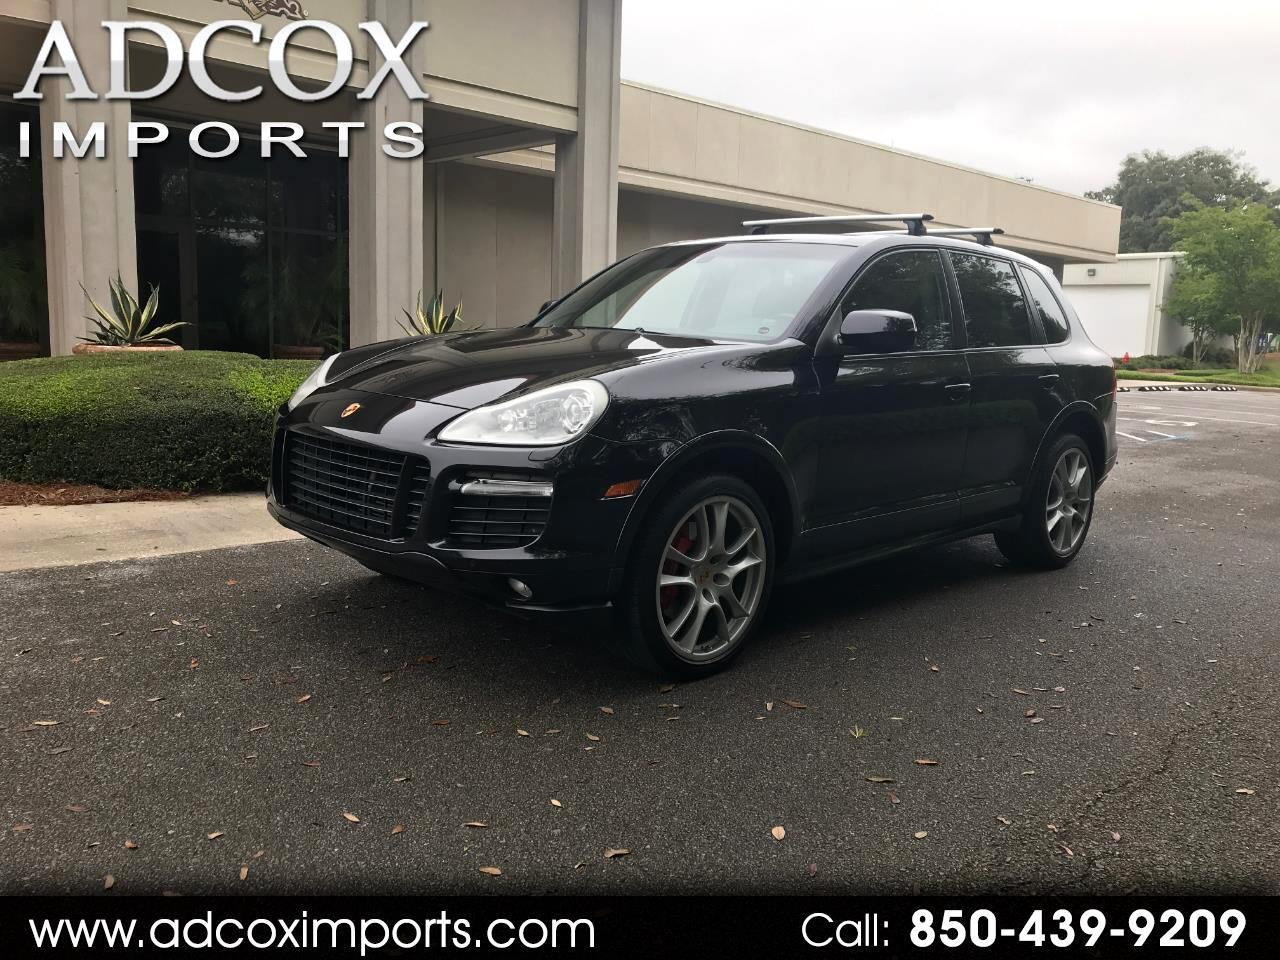 Used 2009 Porsche Cayenne Gts For Sale In Pensacola Fl 32505